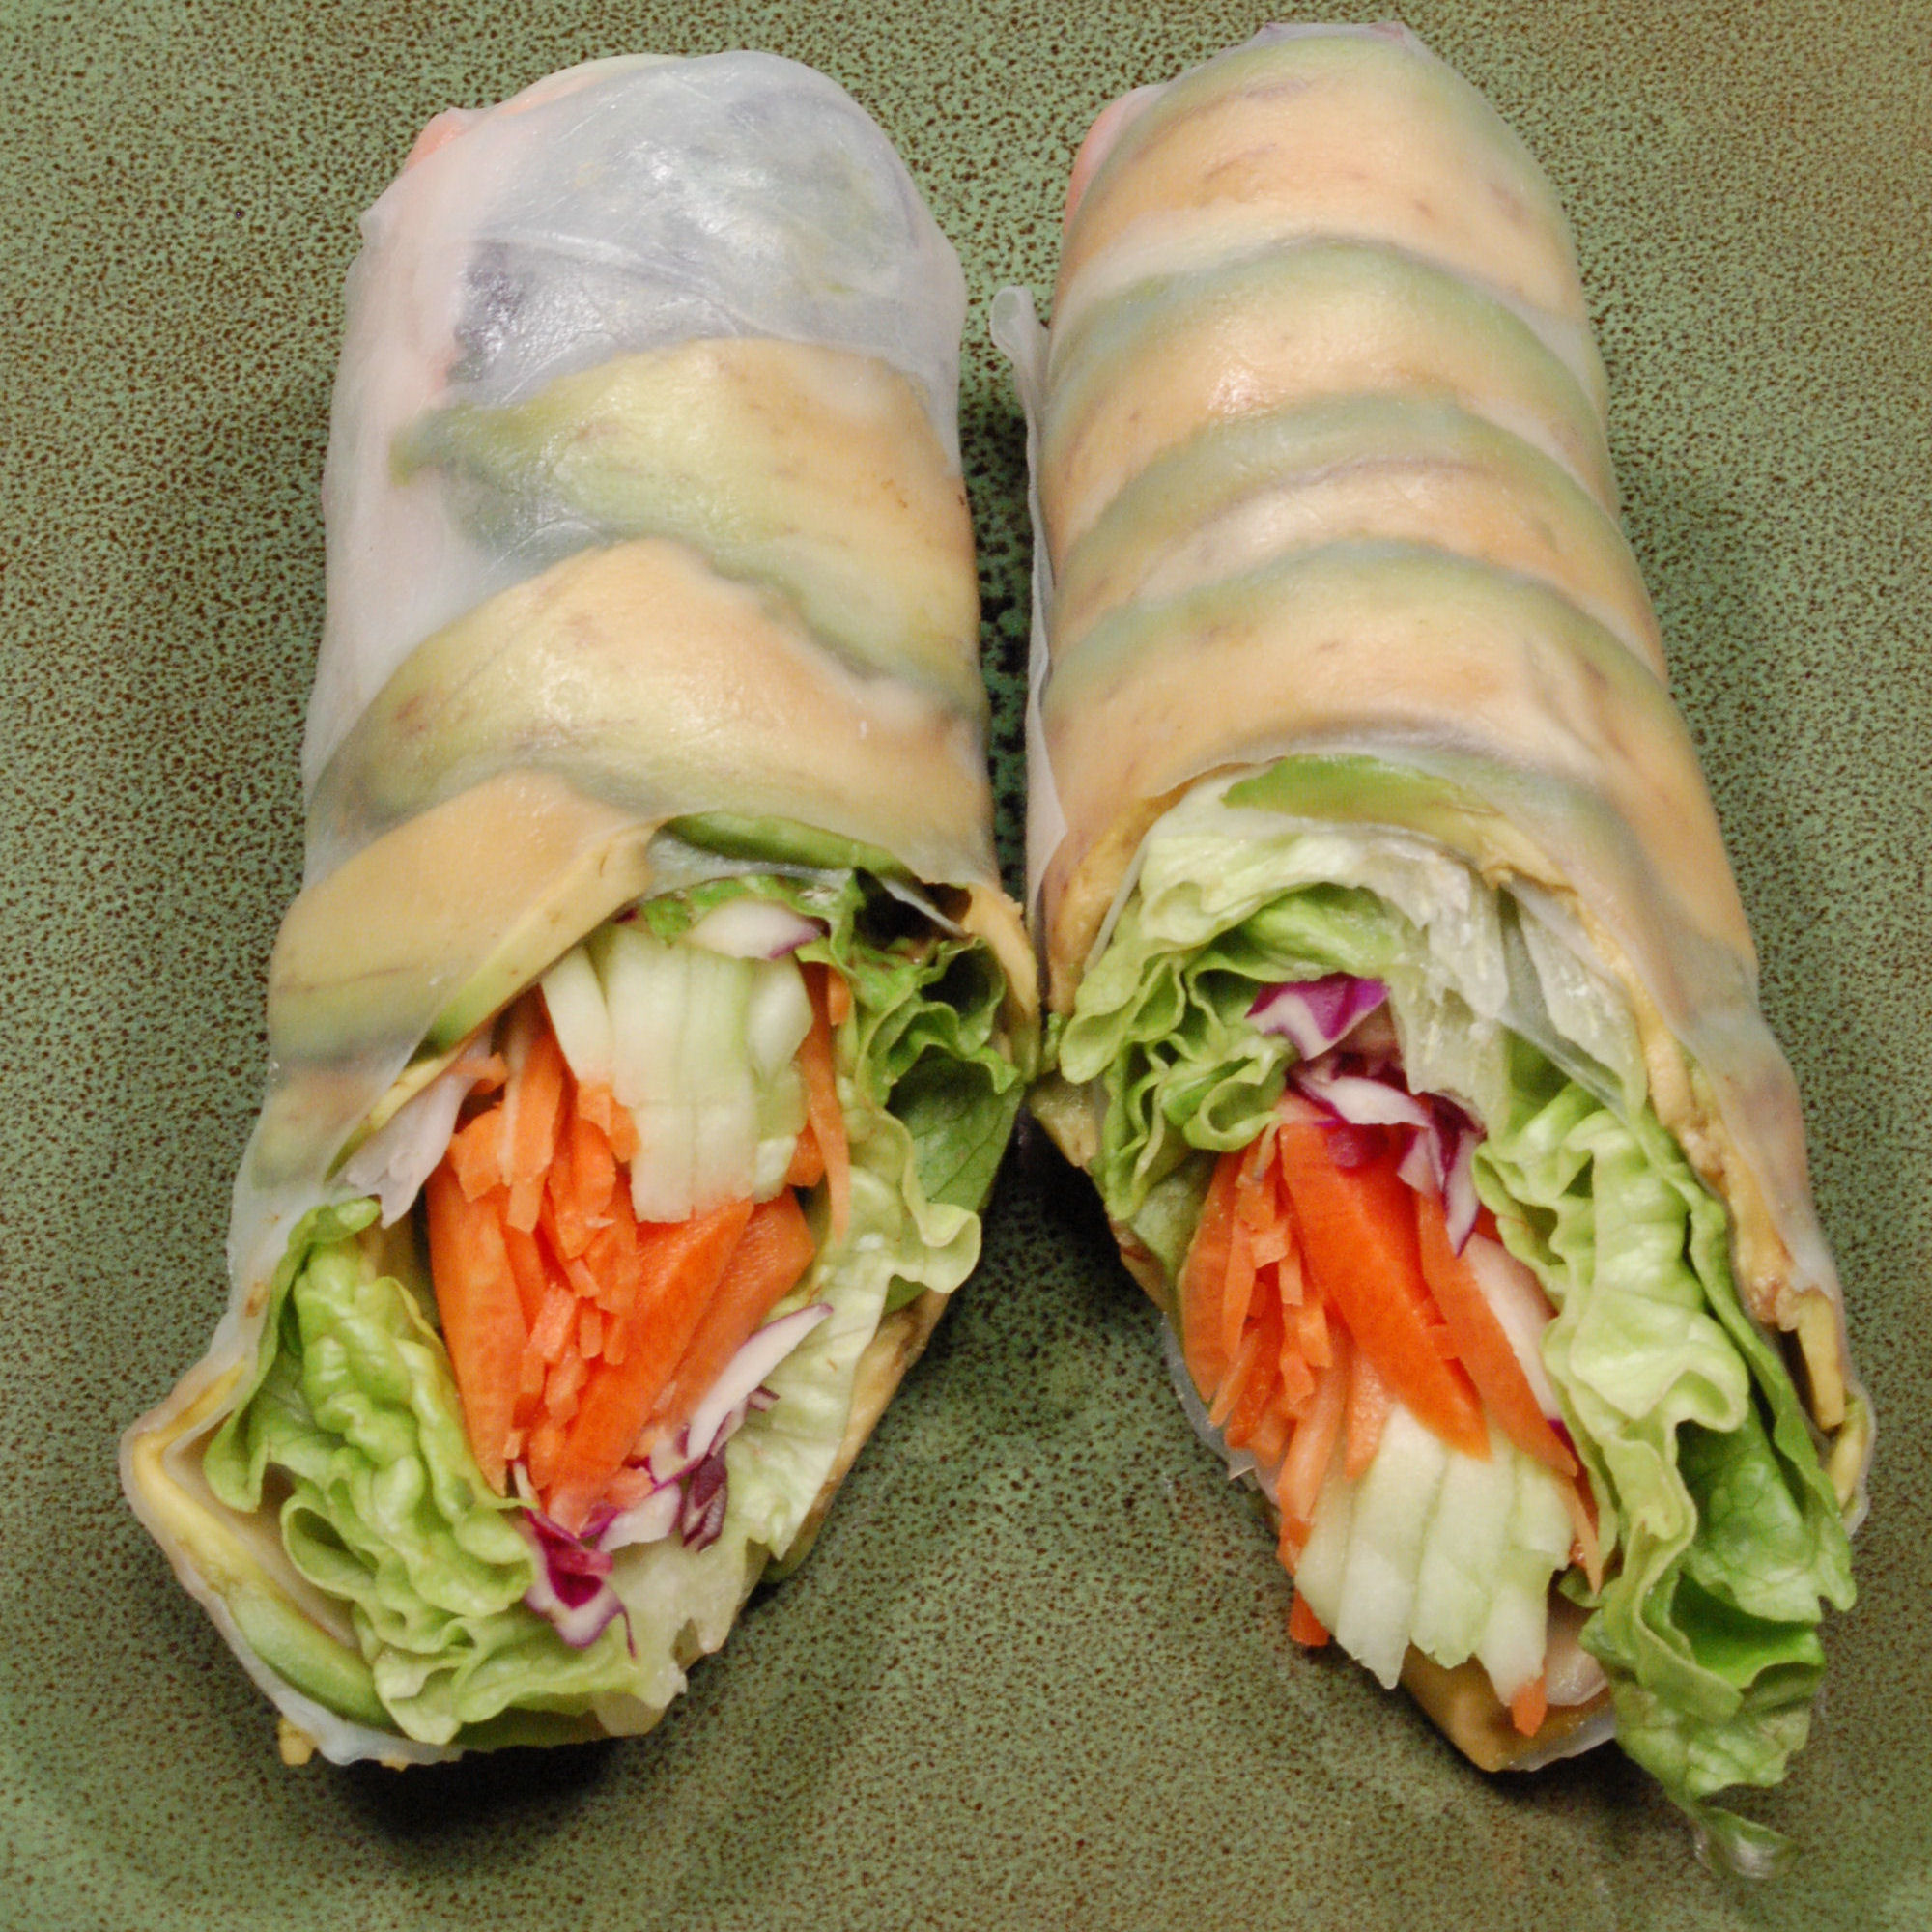 File:Avocado Salad Roll.JPG - Wikipedia